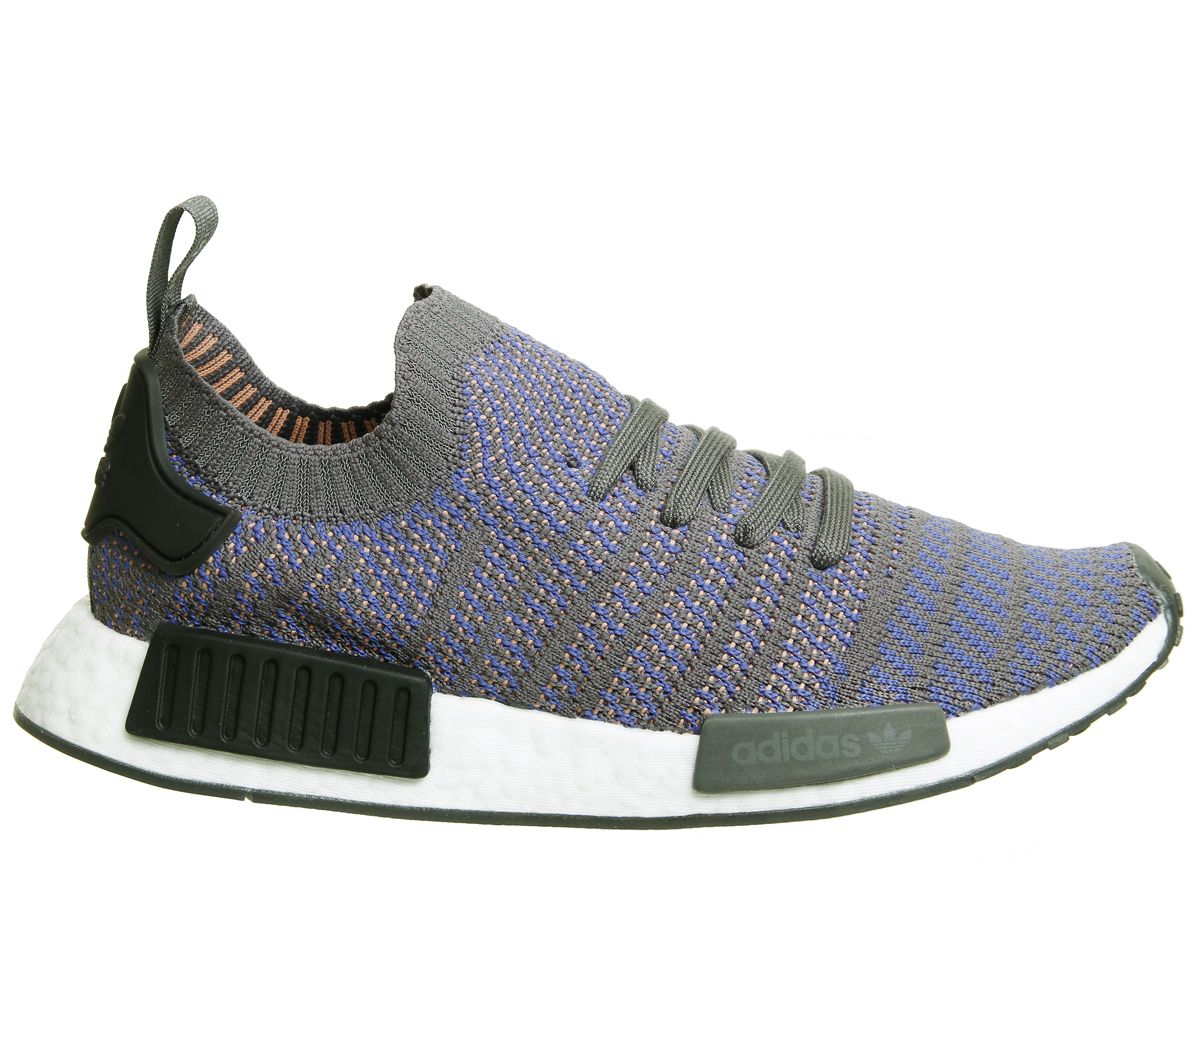 Details zu Adidas Nmd R1 Prime Knit Trainers Hi Res Blue Black White Trainers Shoes